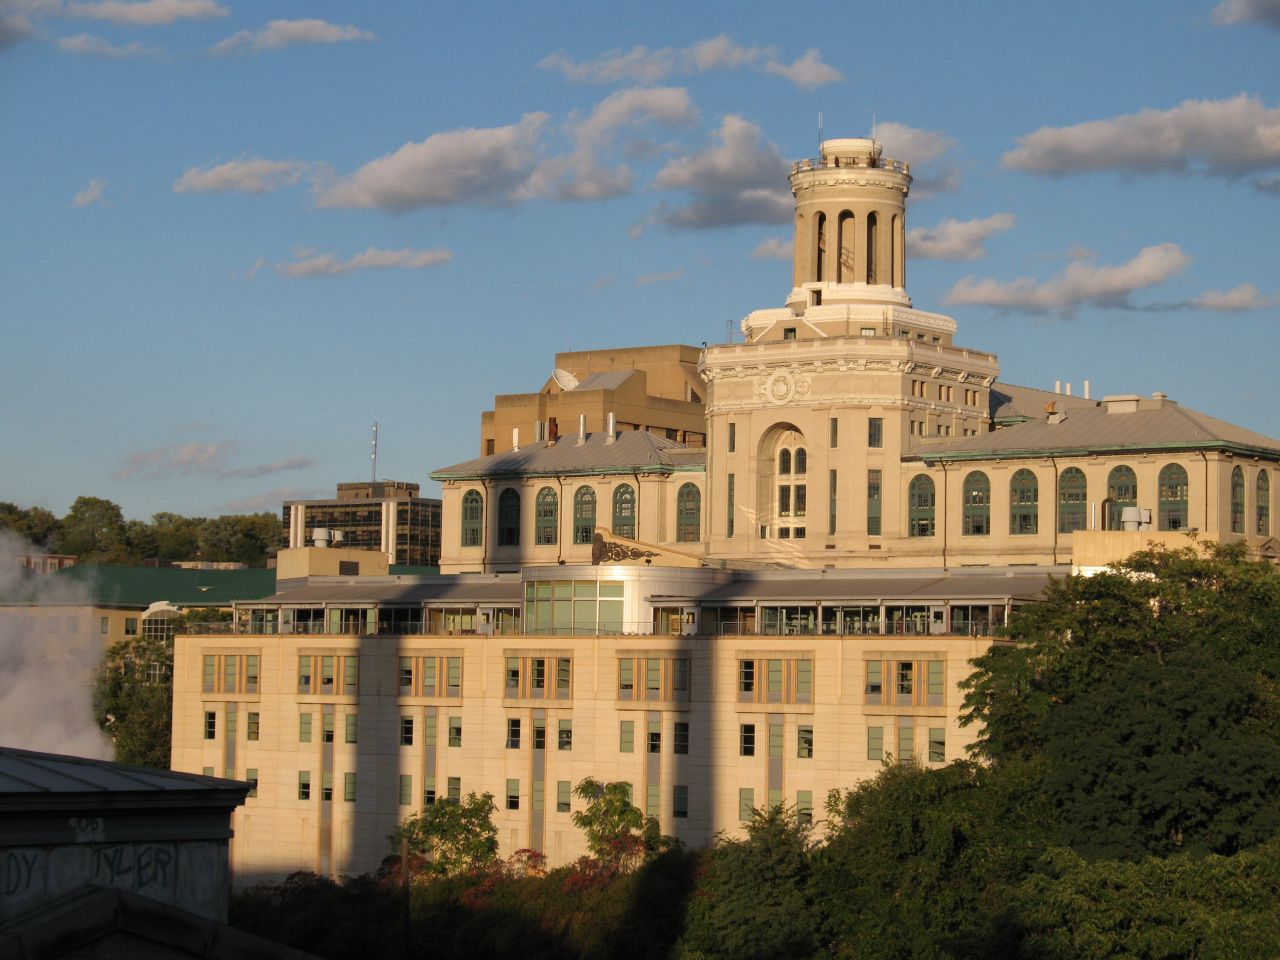 University of Pittsburgh vs Purdue University, which should I transfer to for undergrad business school?